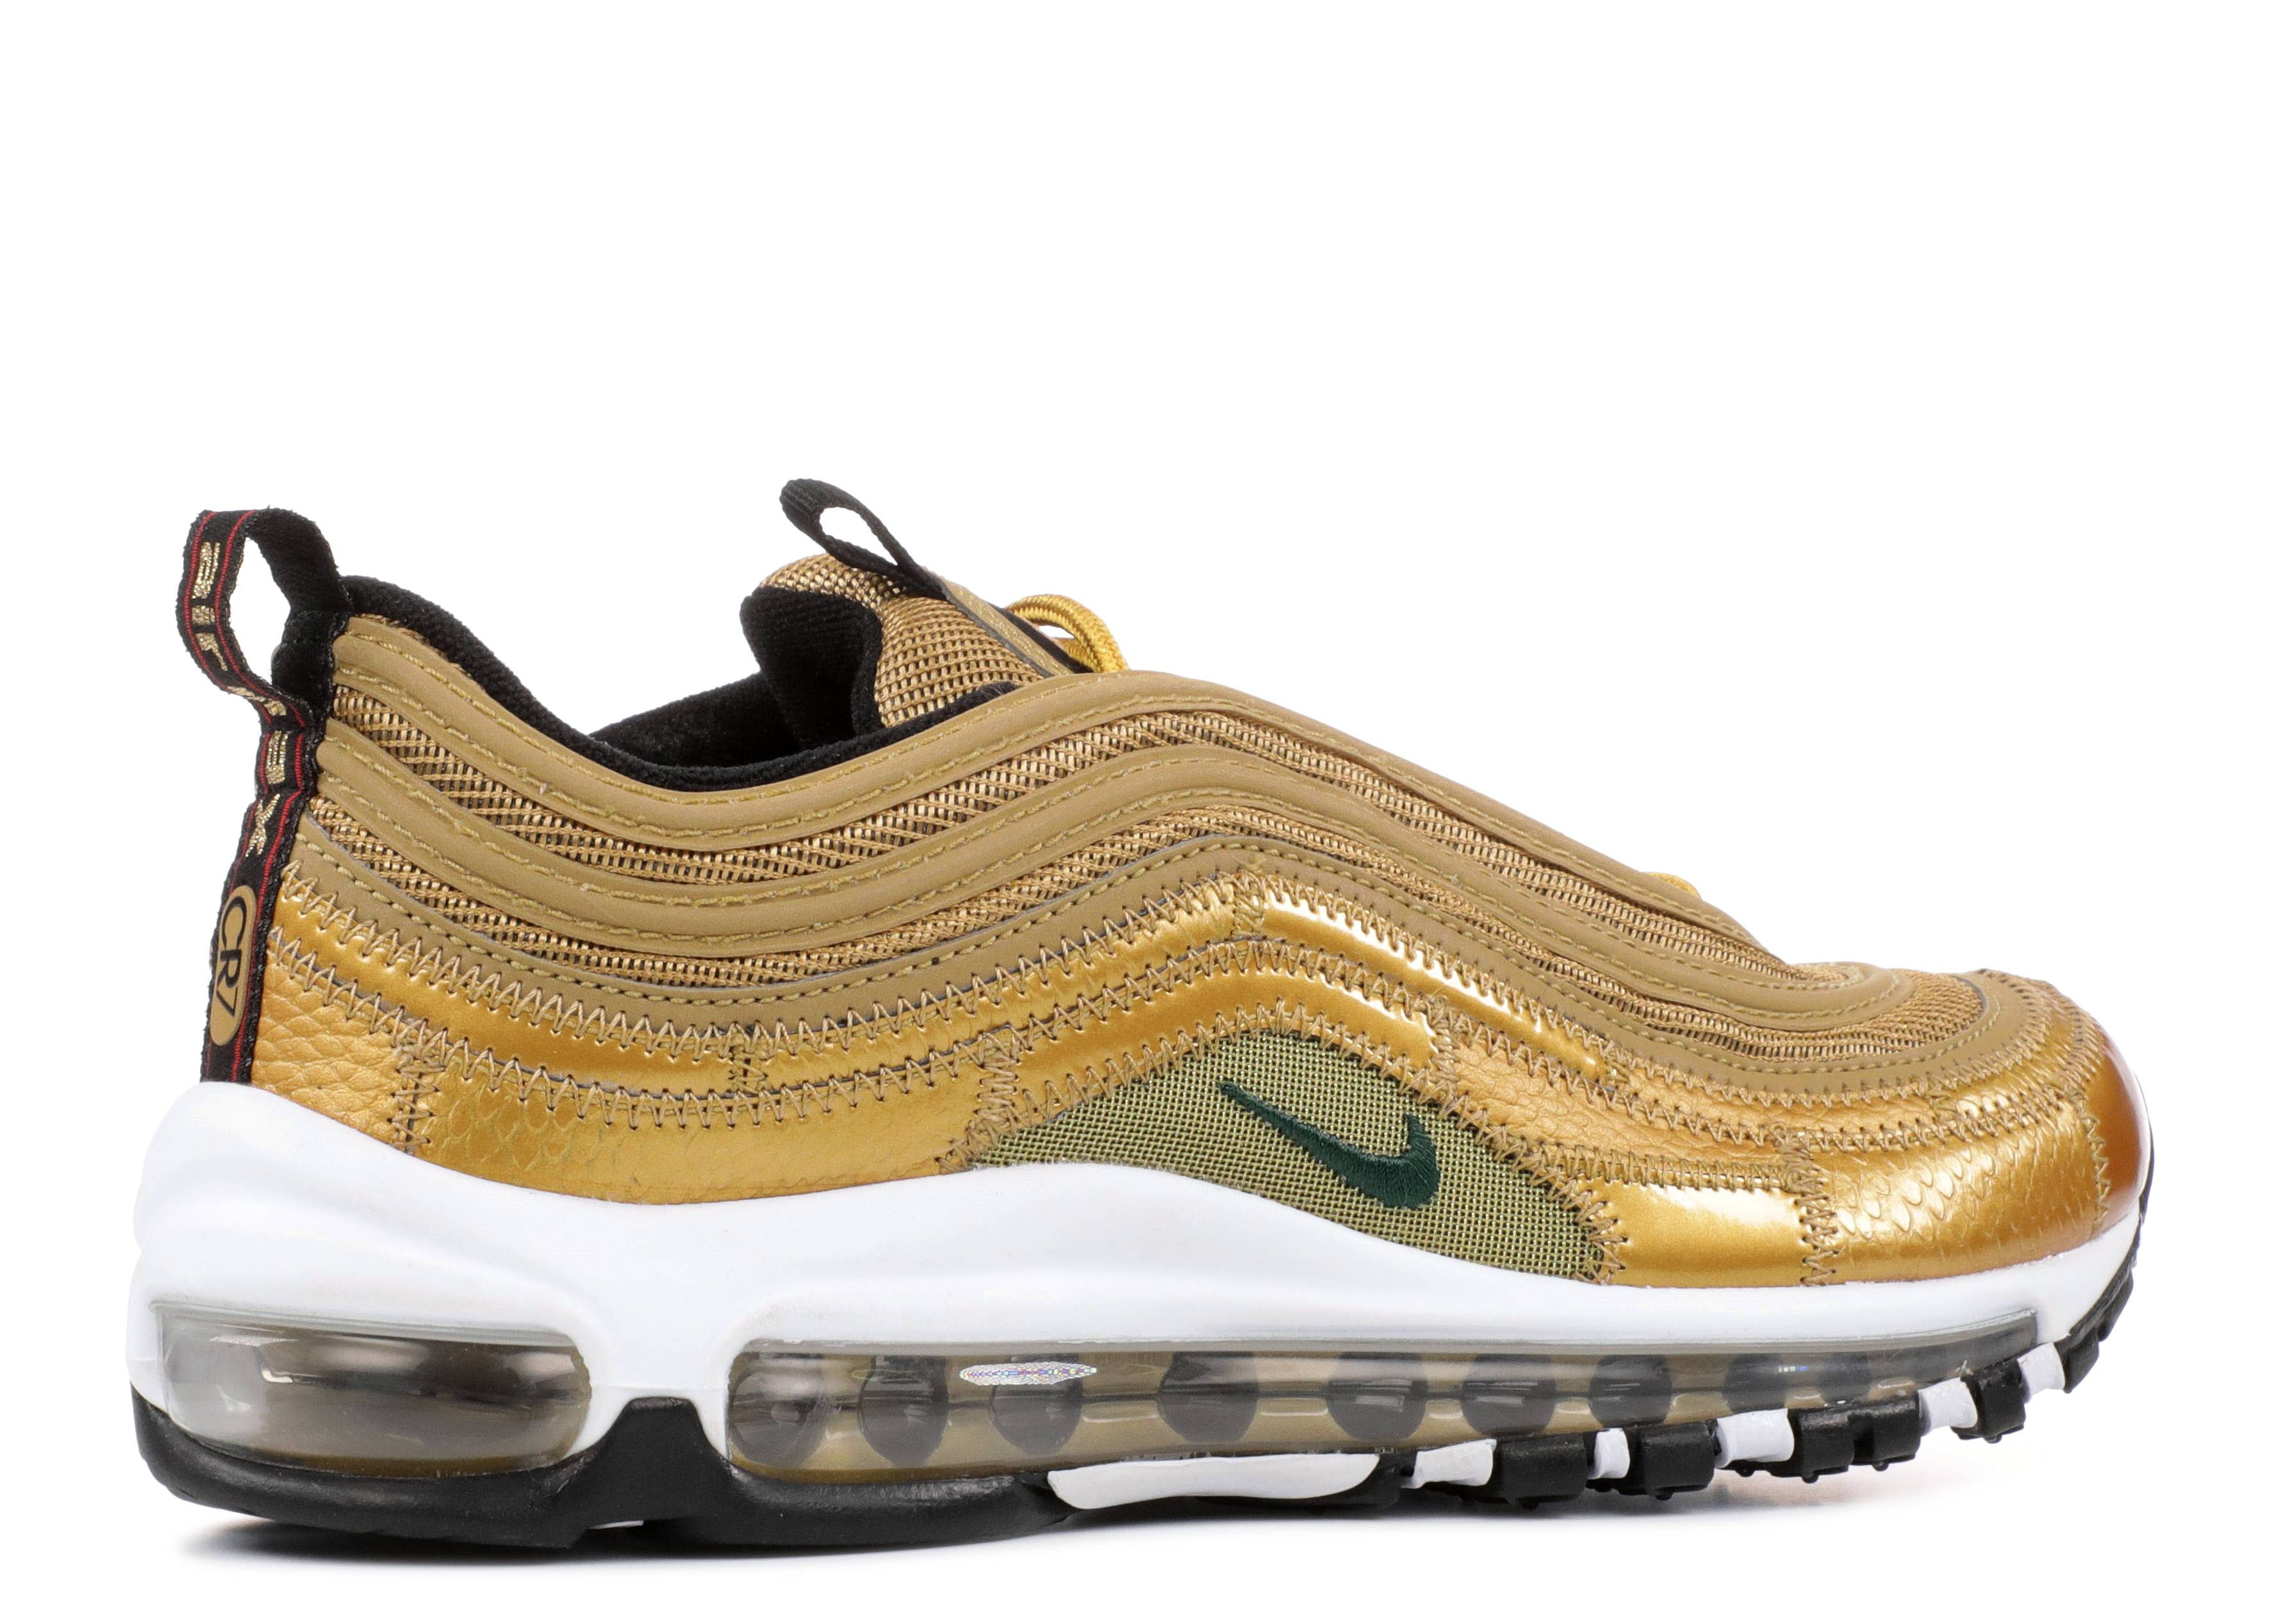 Christiano Ronaldo's Nike Air Max C7 Shoes Have a Special